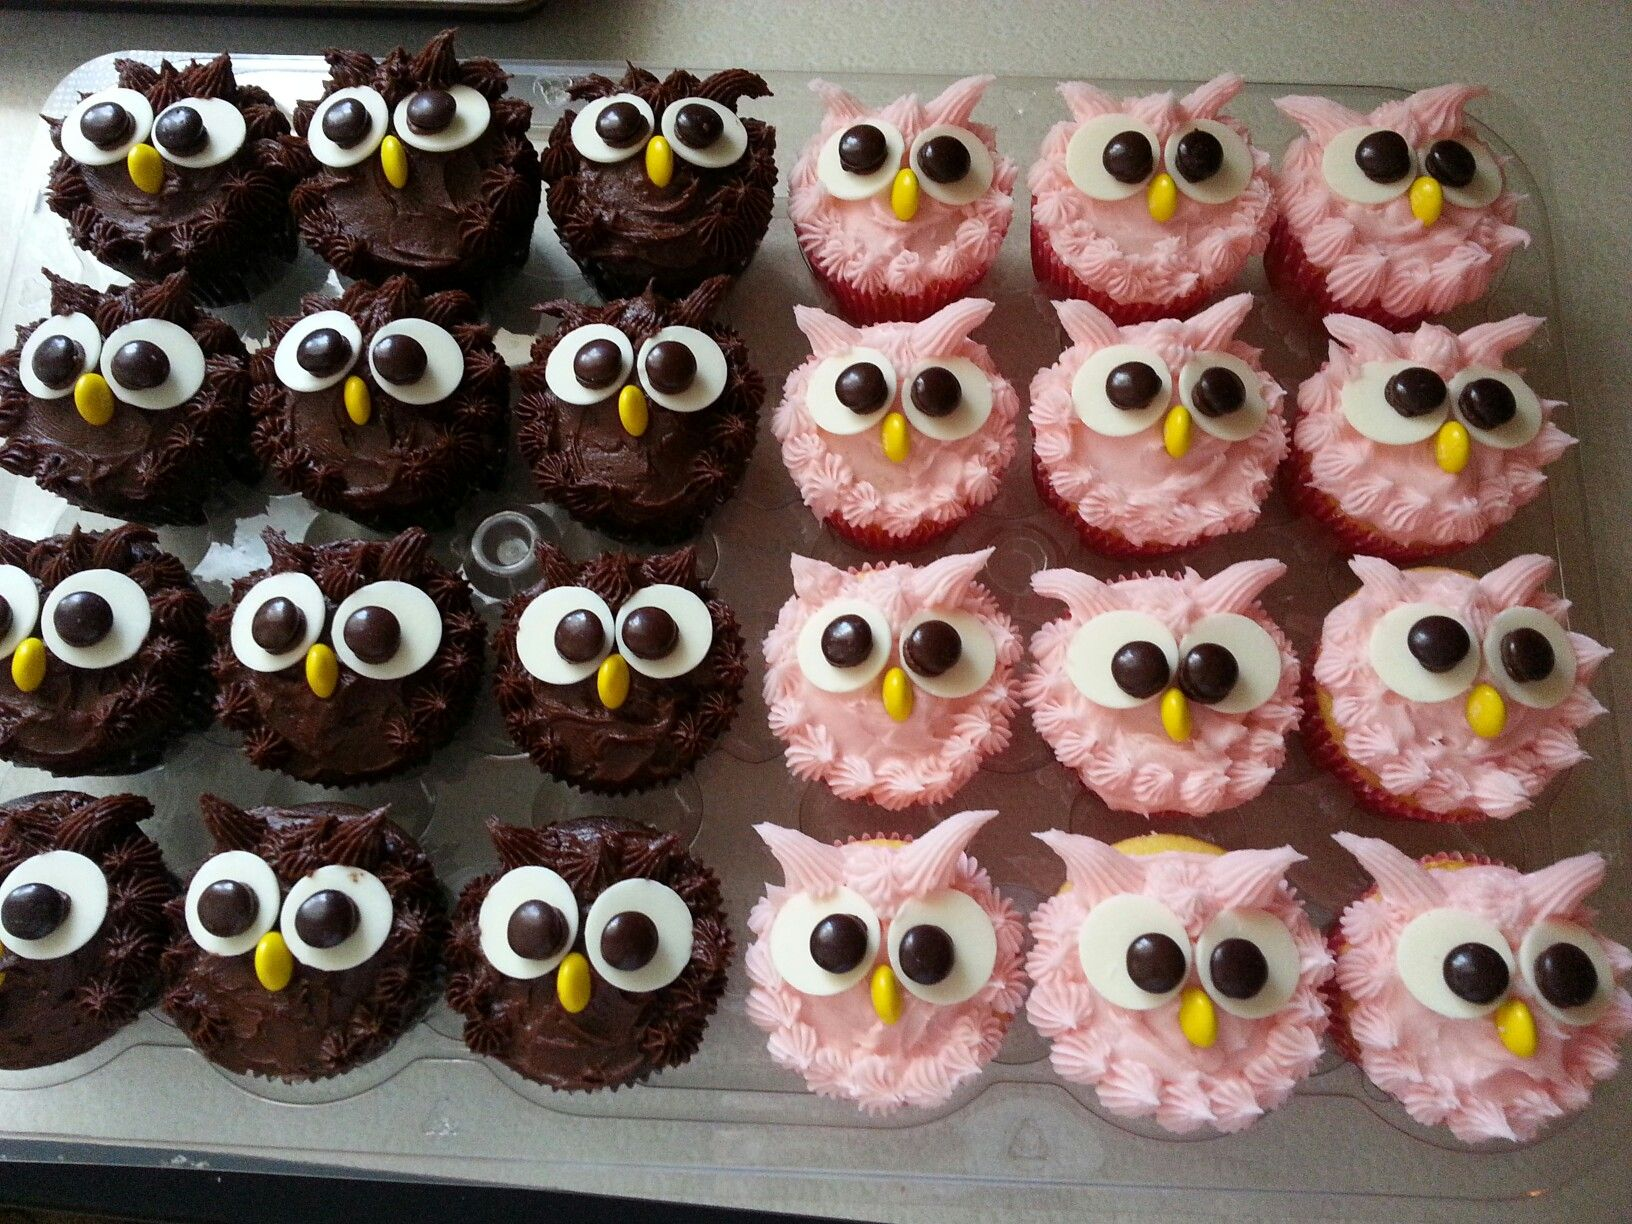 Decoration Pate A Sucre Cupcake Owl Cupcakes Cake Yammy Ec Pinterest Gateau